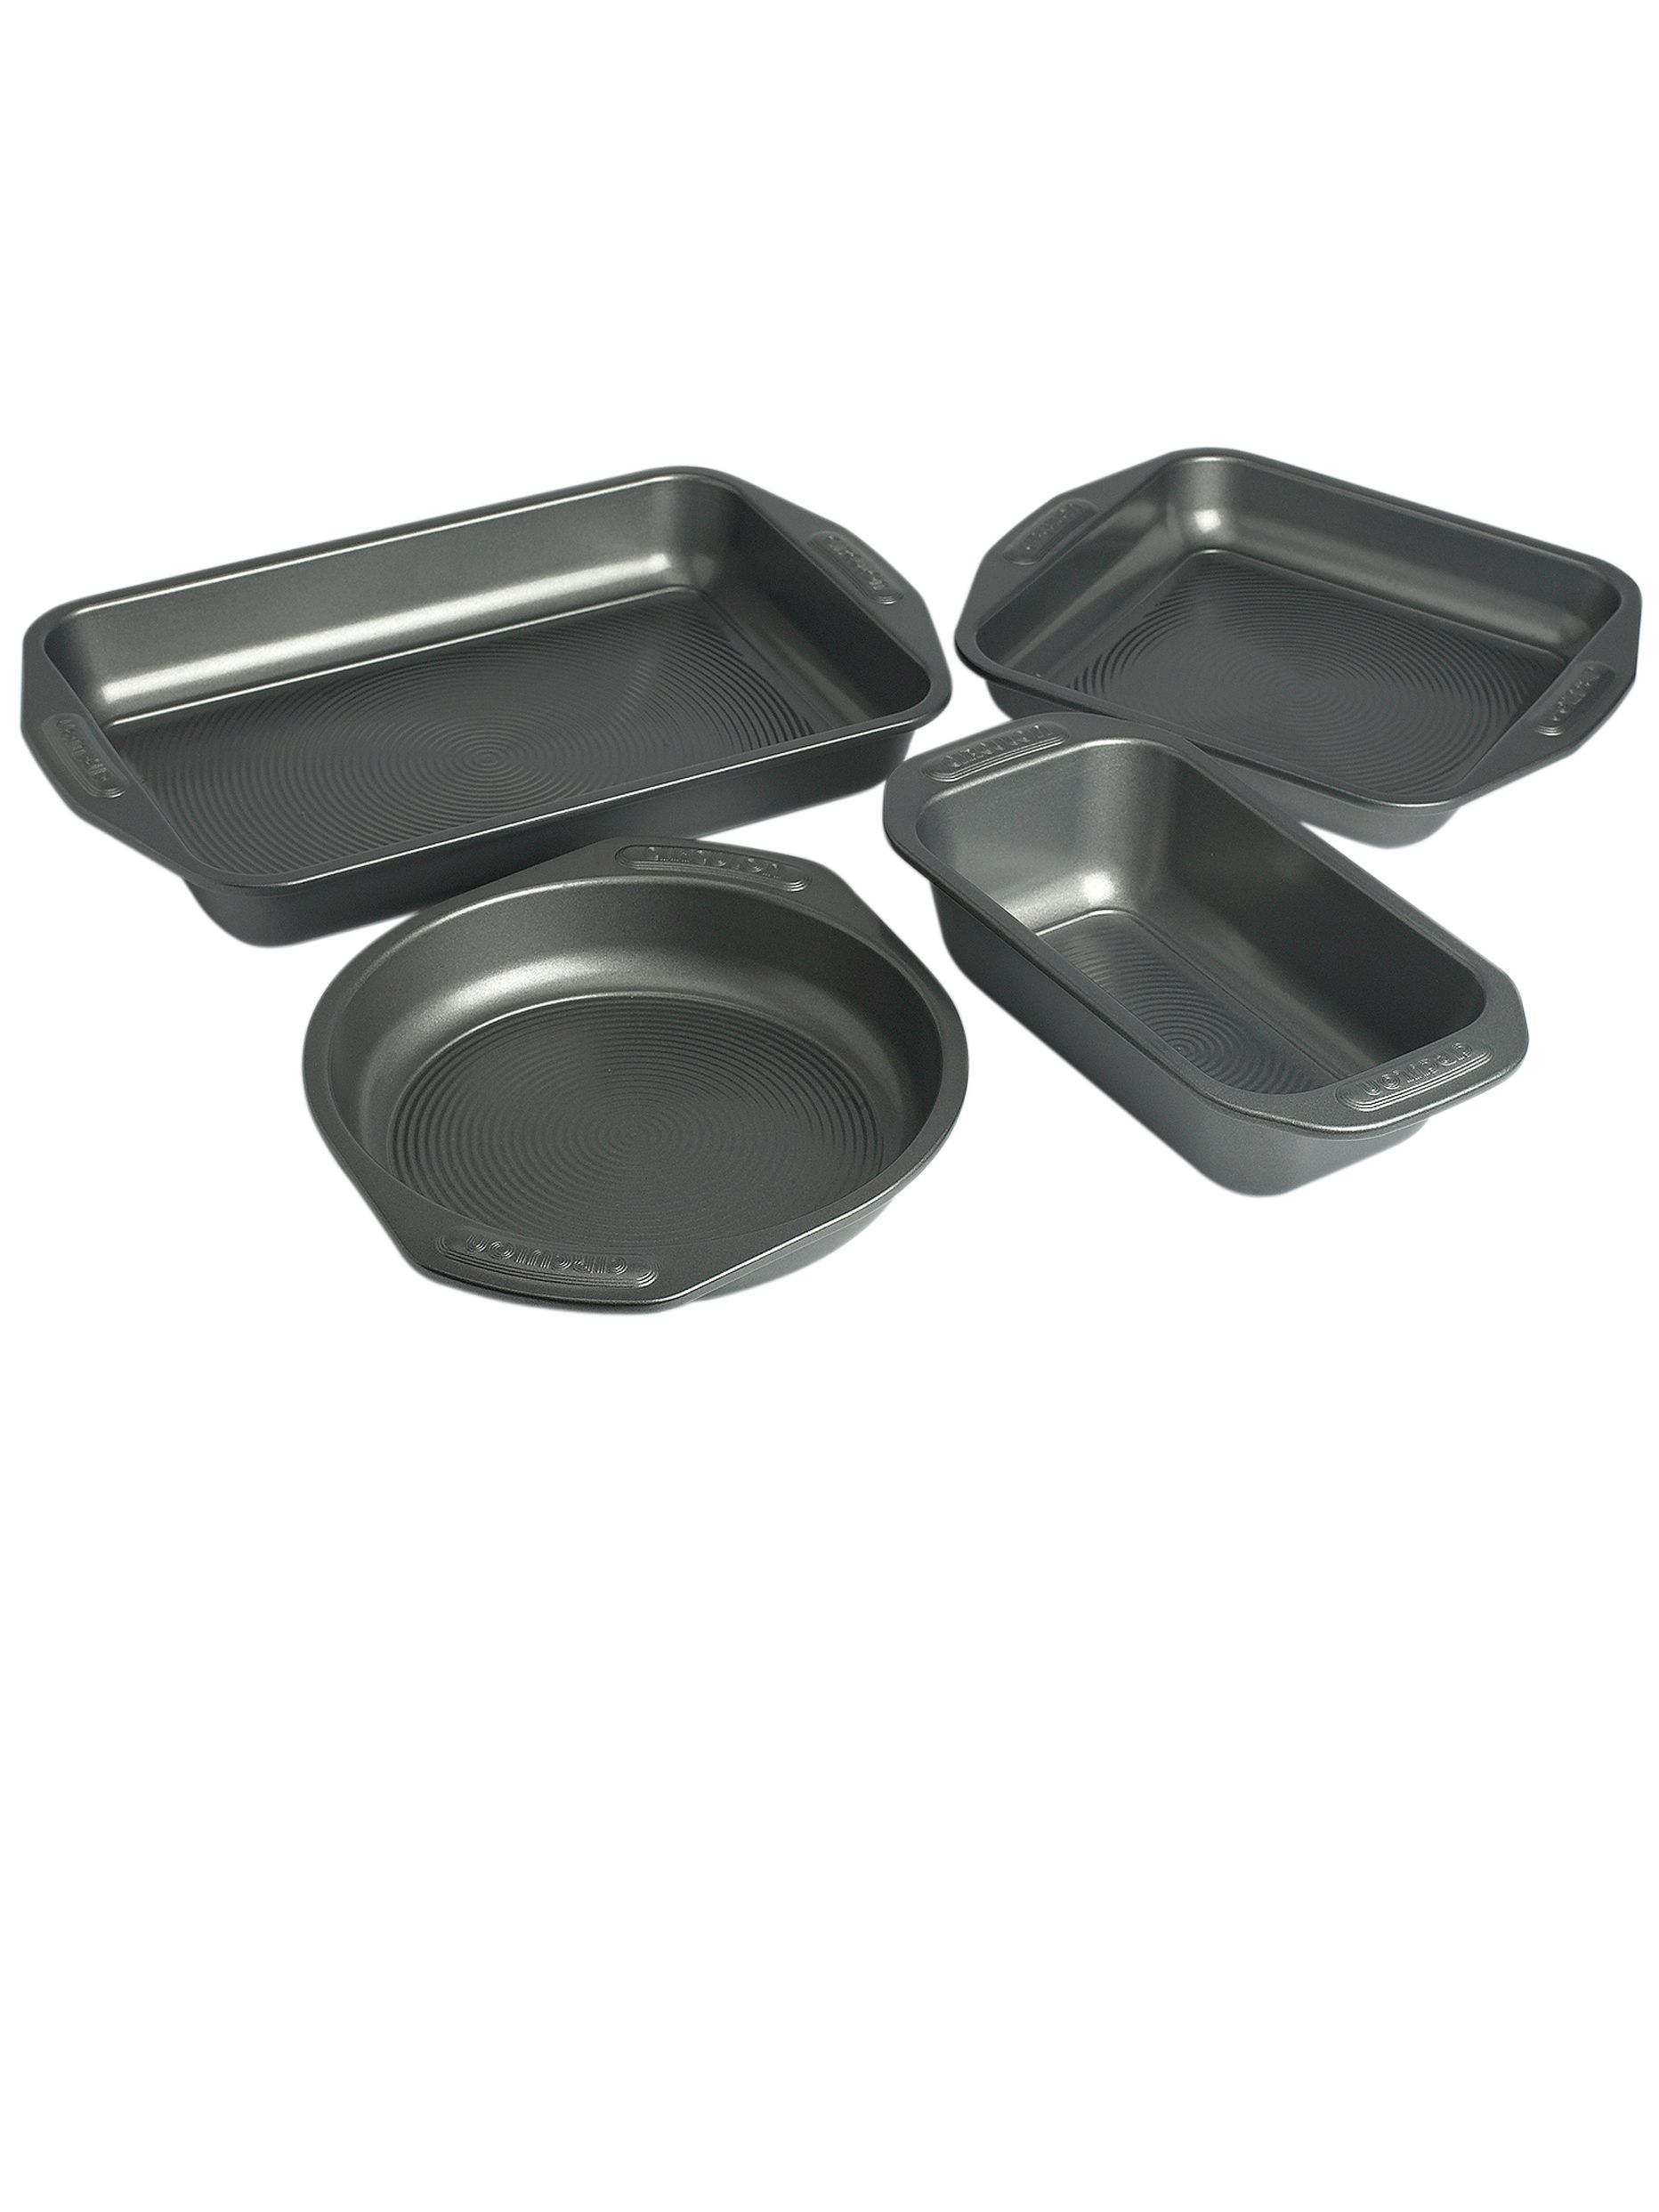 Circulon Cookware Range in Grey